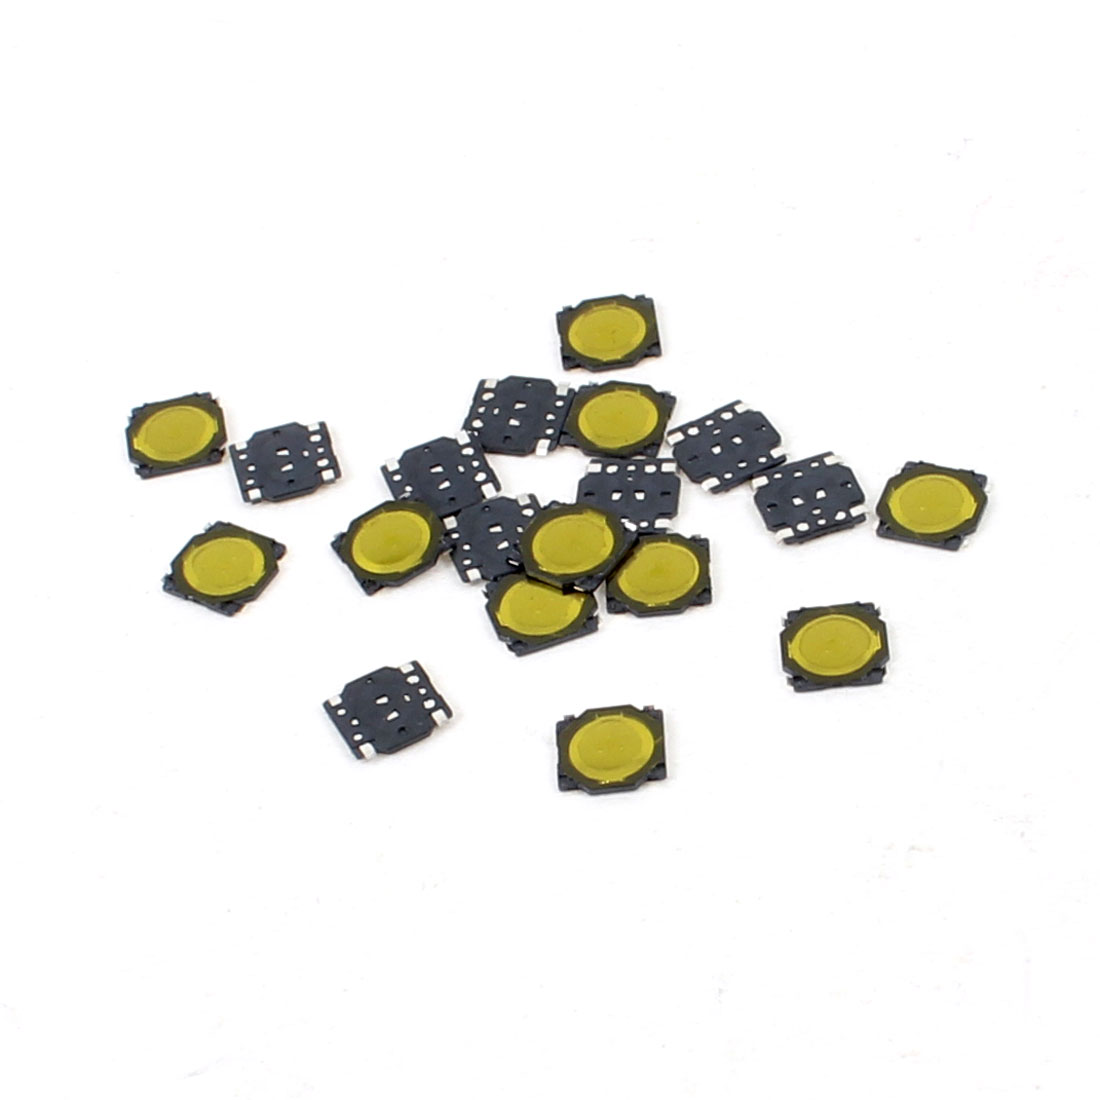 20 Pcs 3.7x3.7x0.35mm 4Pin Momentary Push Button PCB SMD SMT Tactile Tact Switch